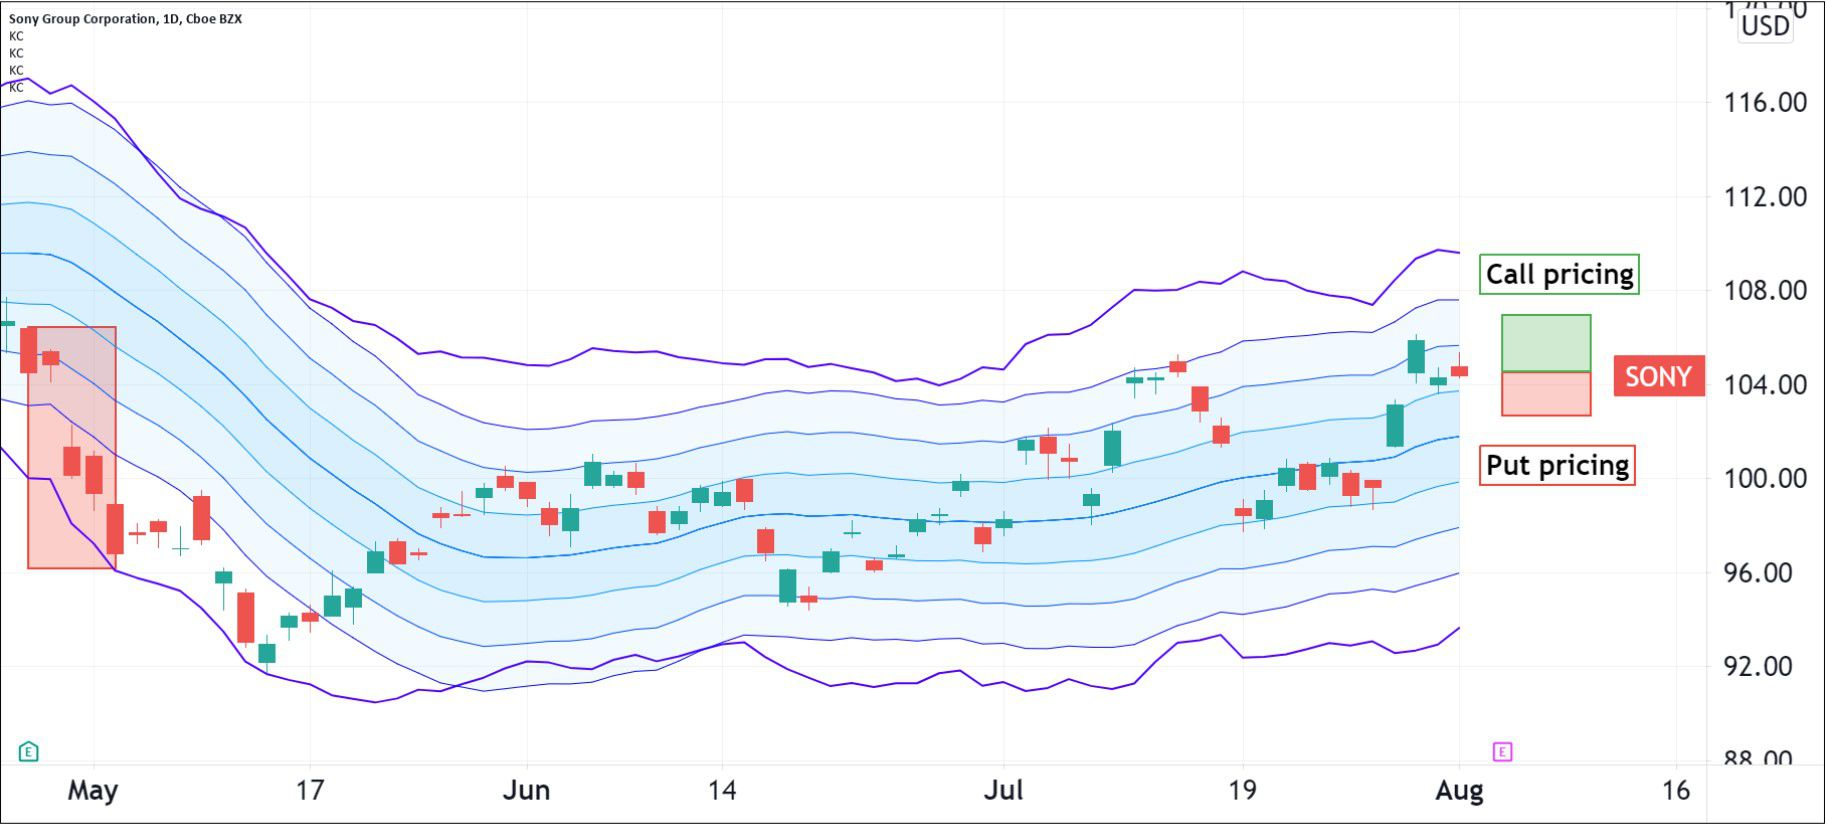 Option pricing for Sony Group Corporation (SONY)